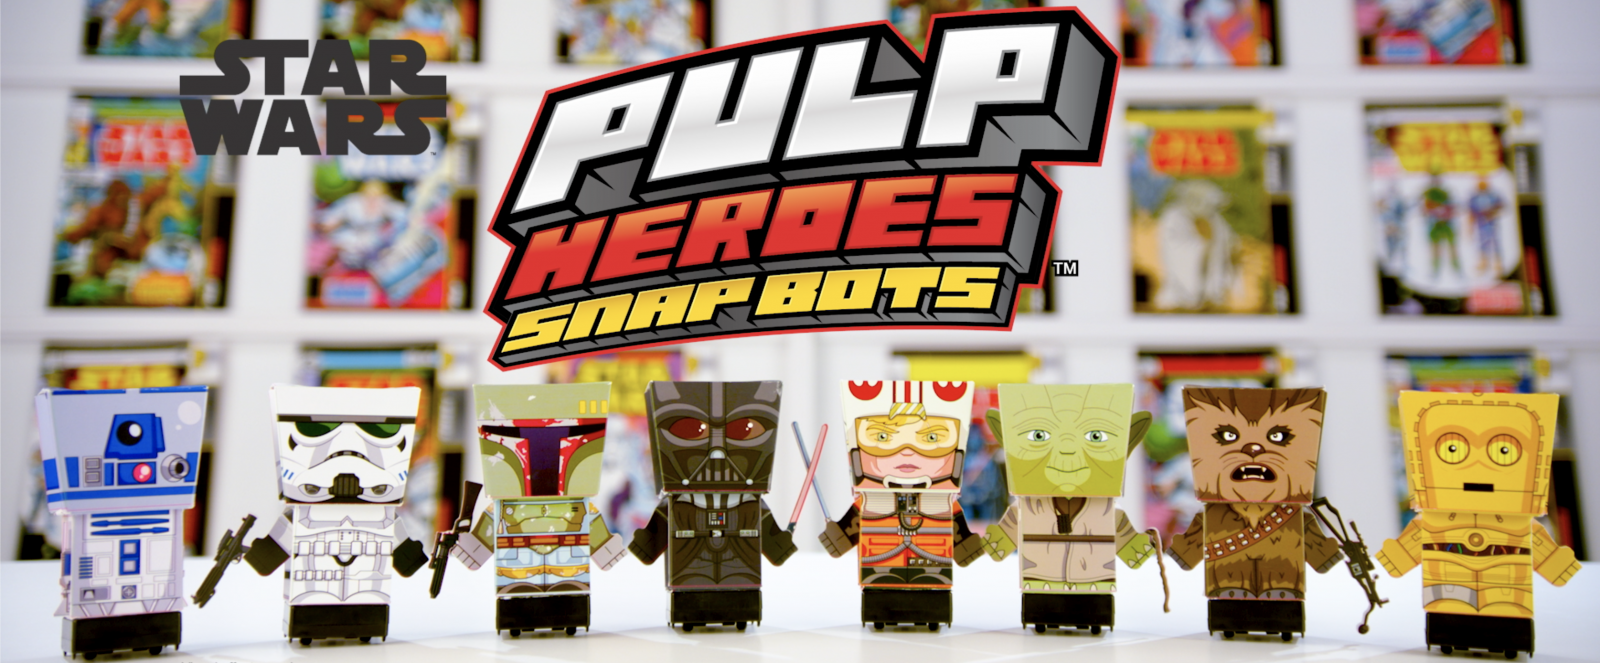 Pulp Heroes Star Wars Snapbots